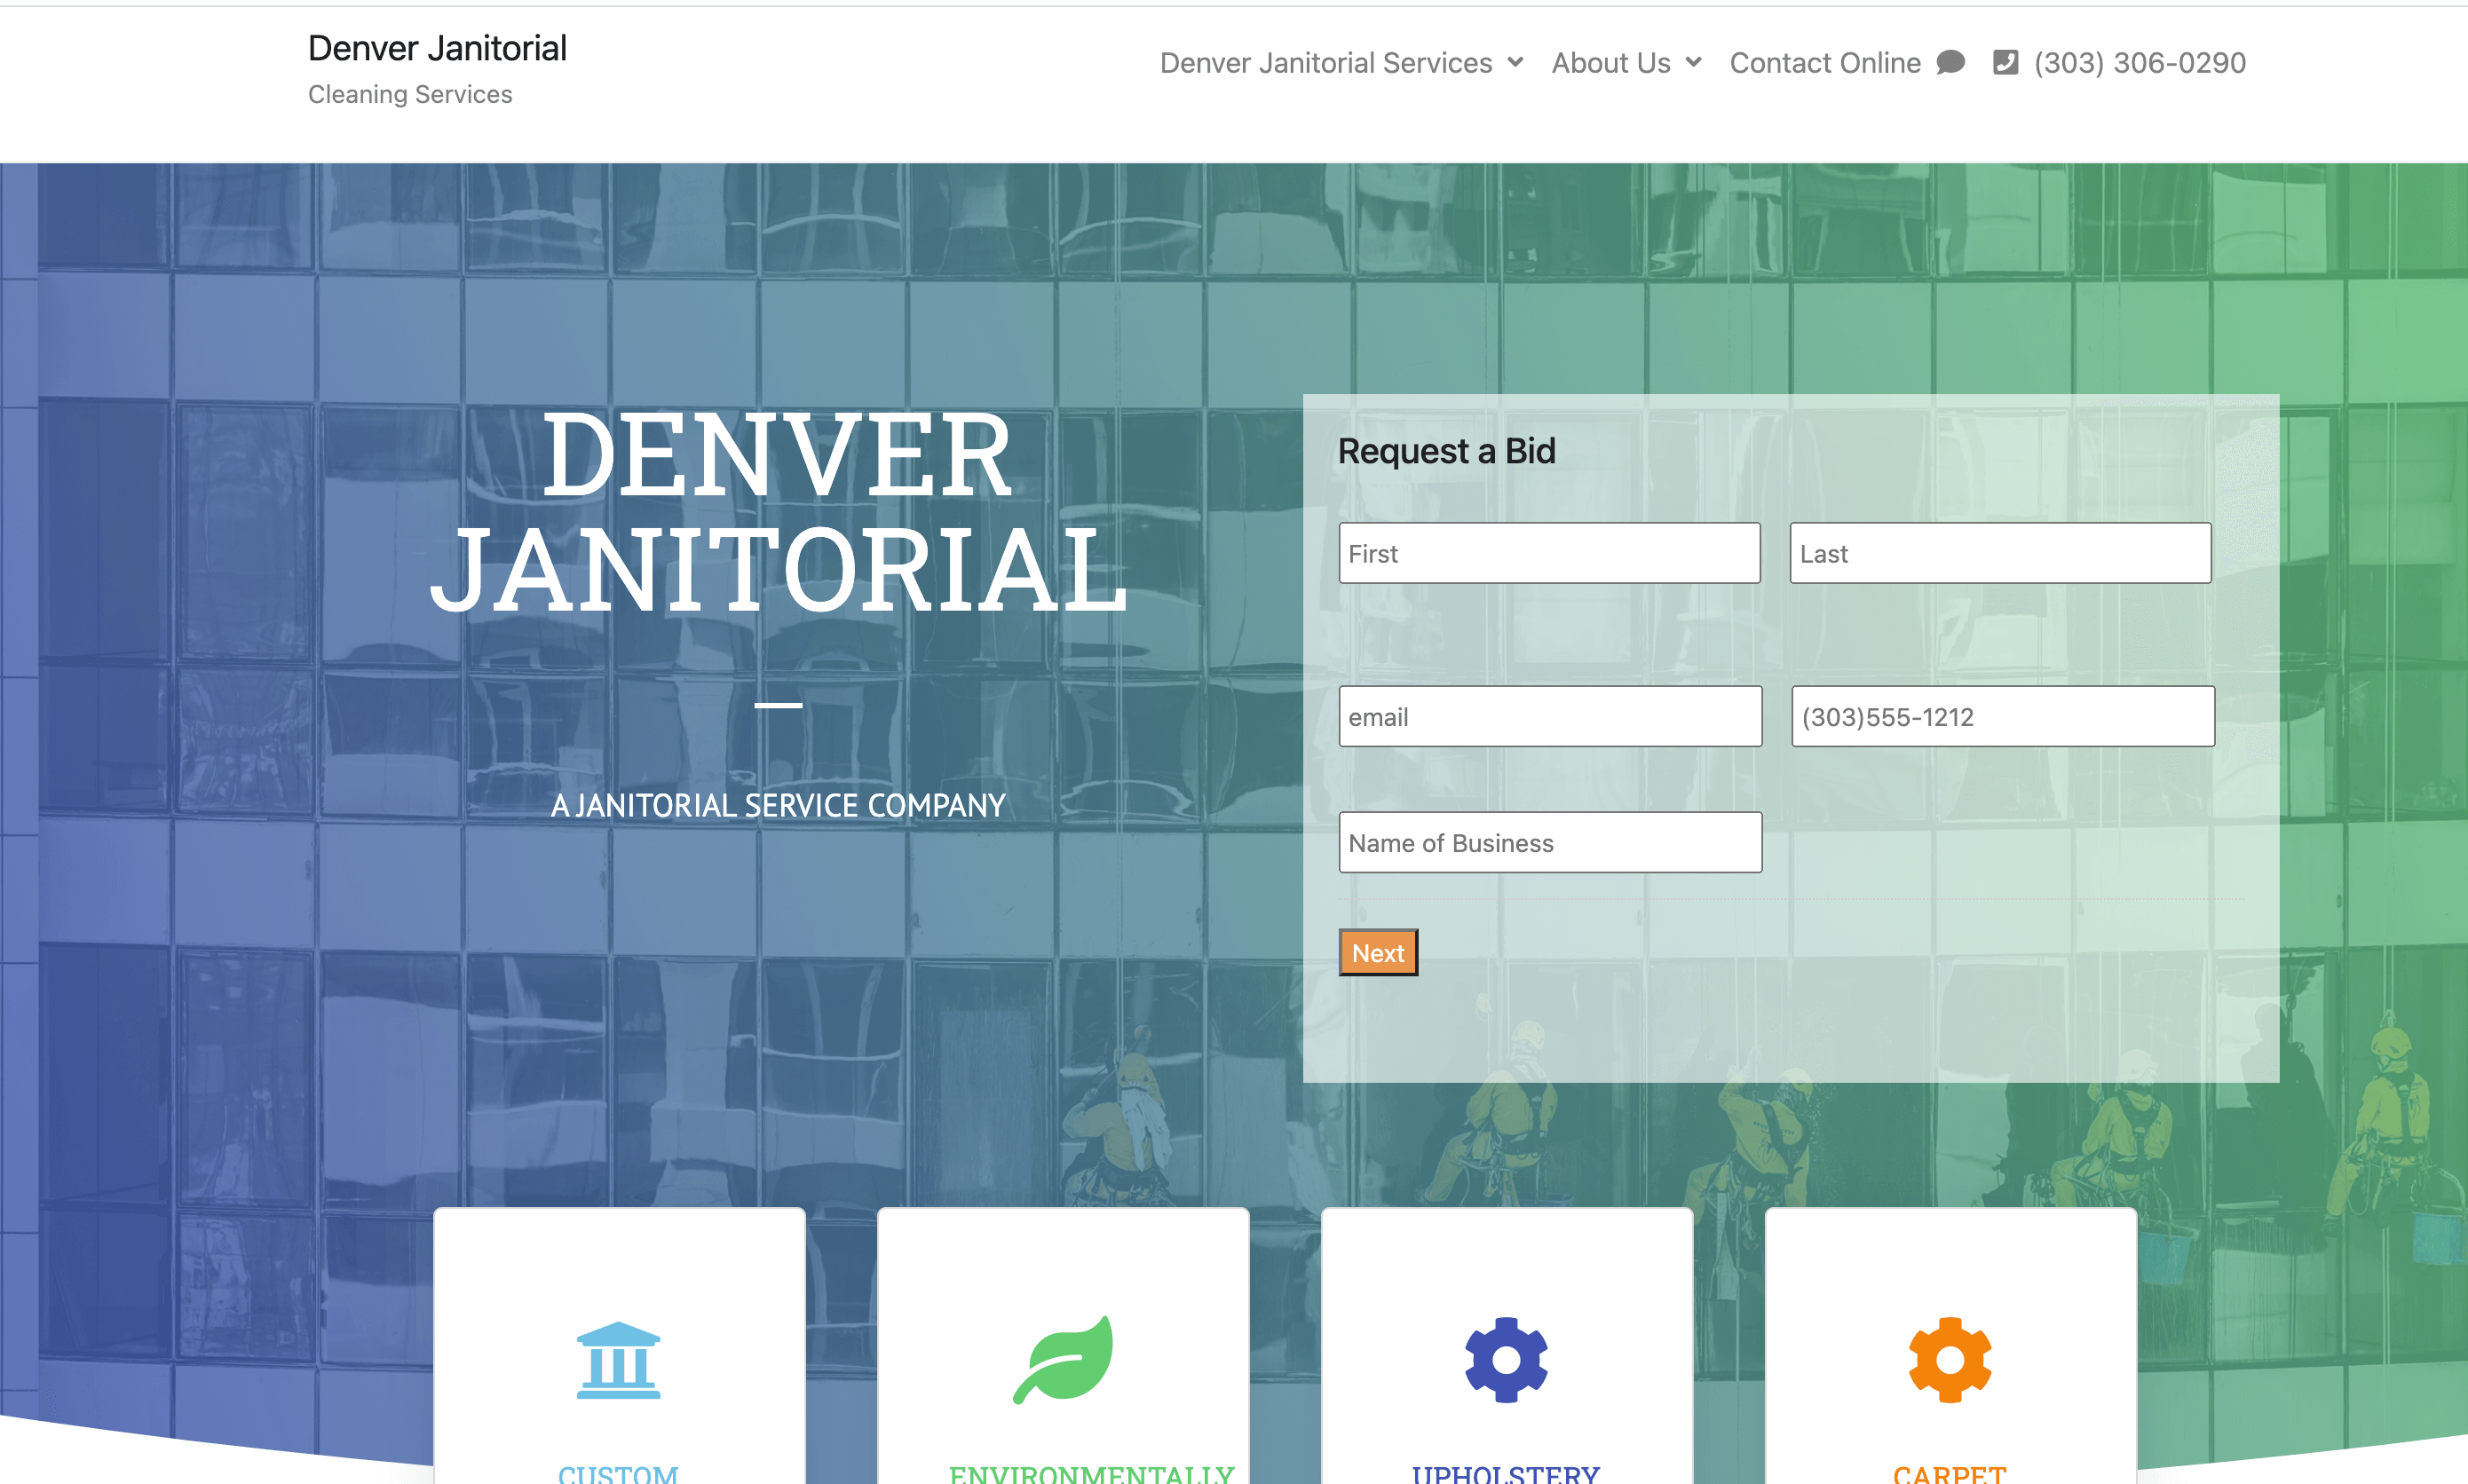 Denver Janitorial Services